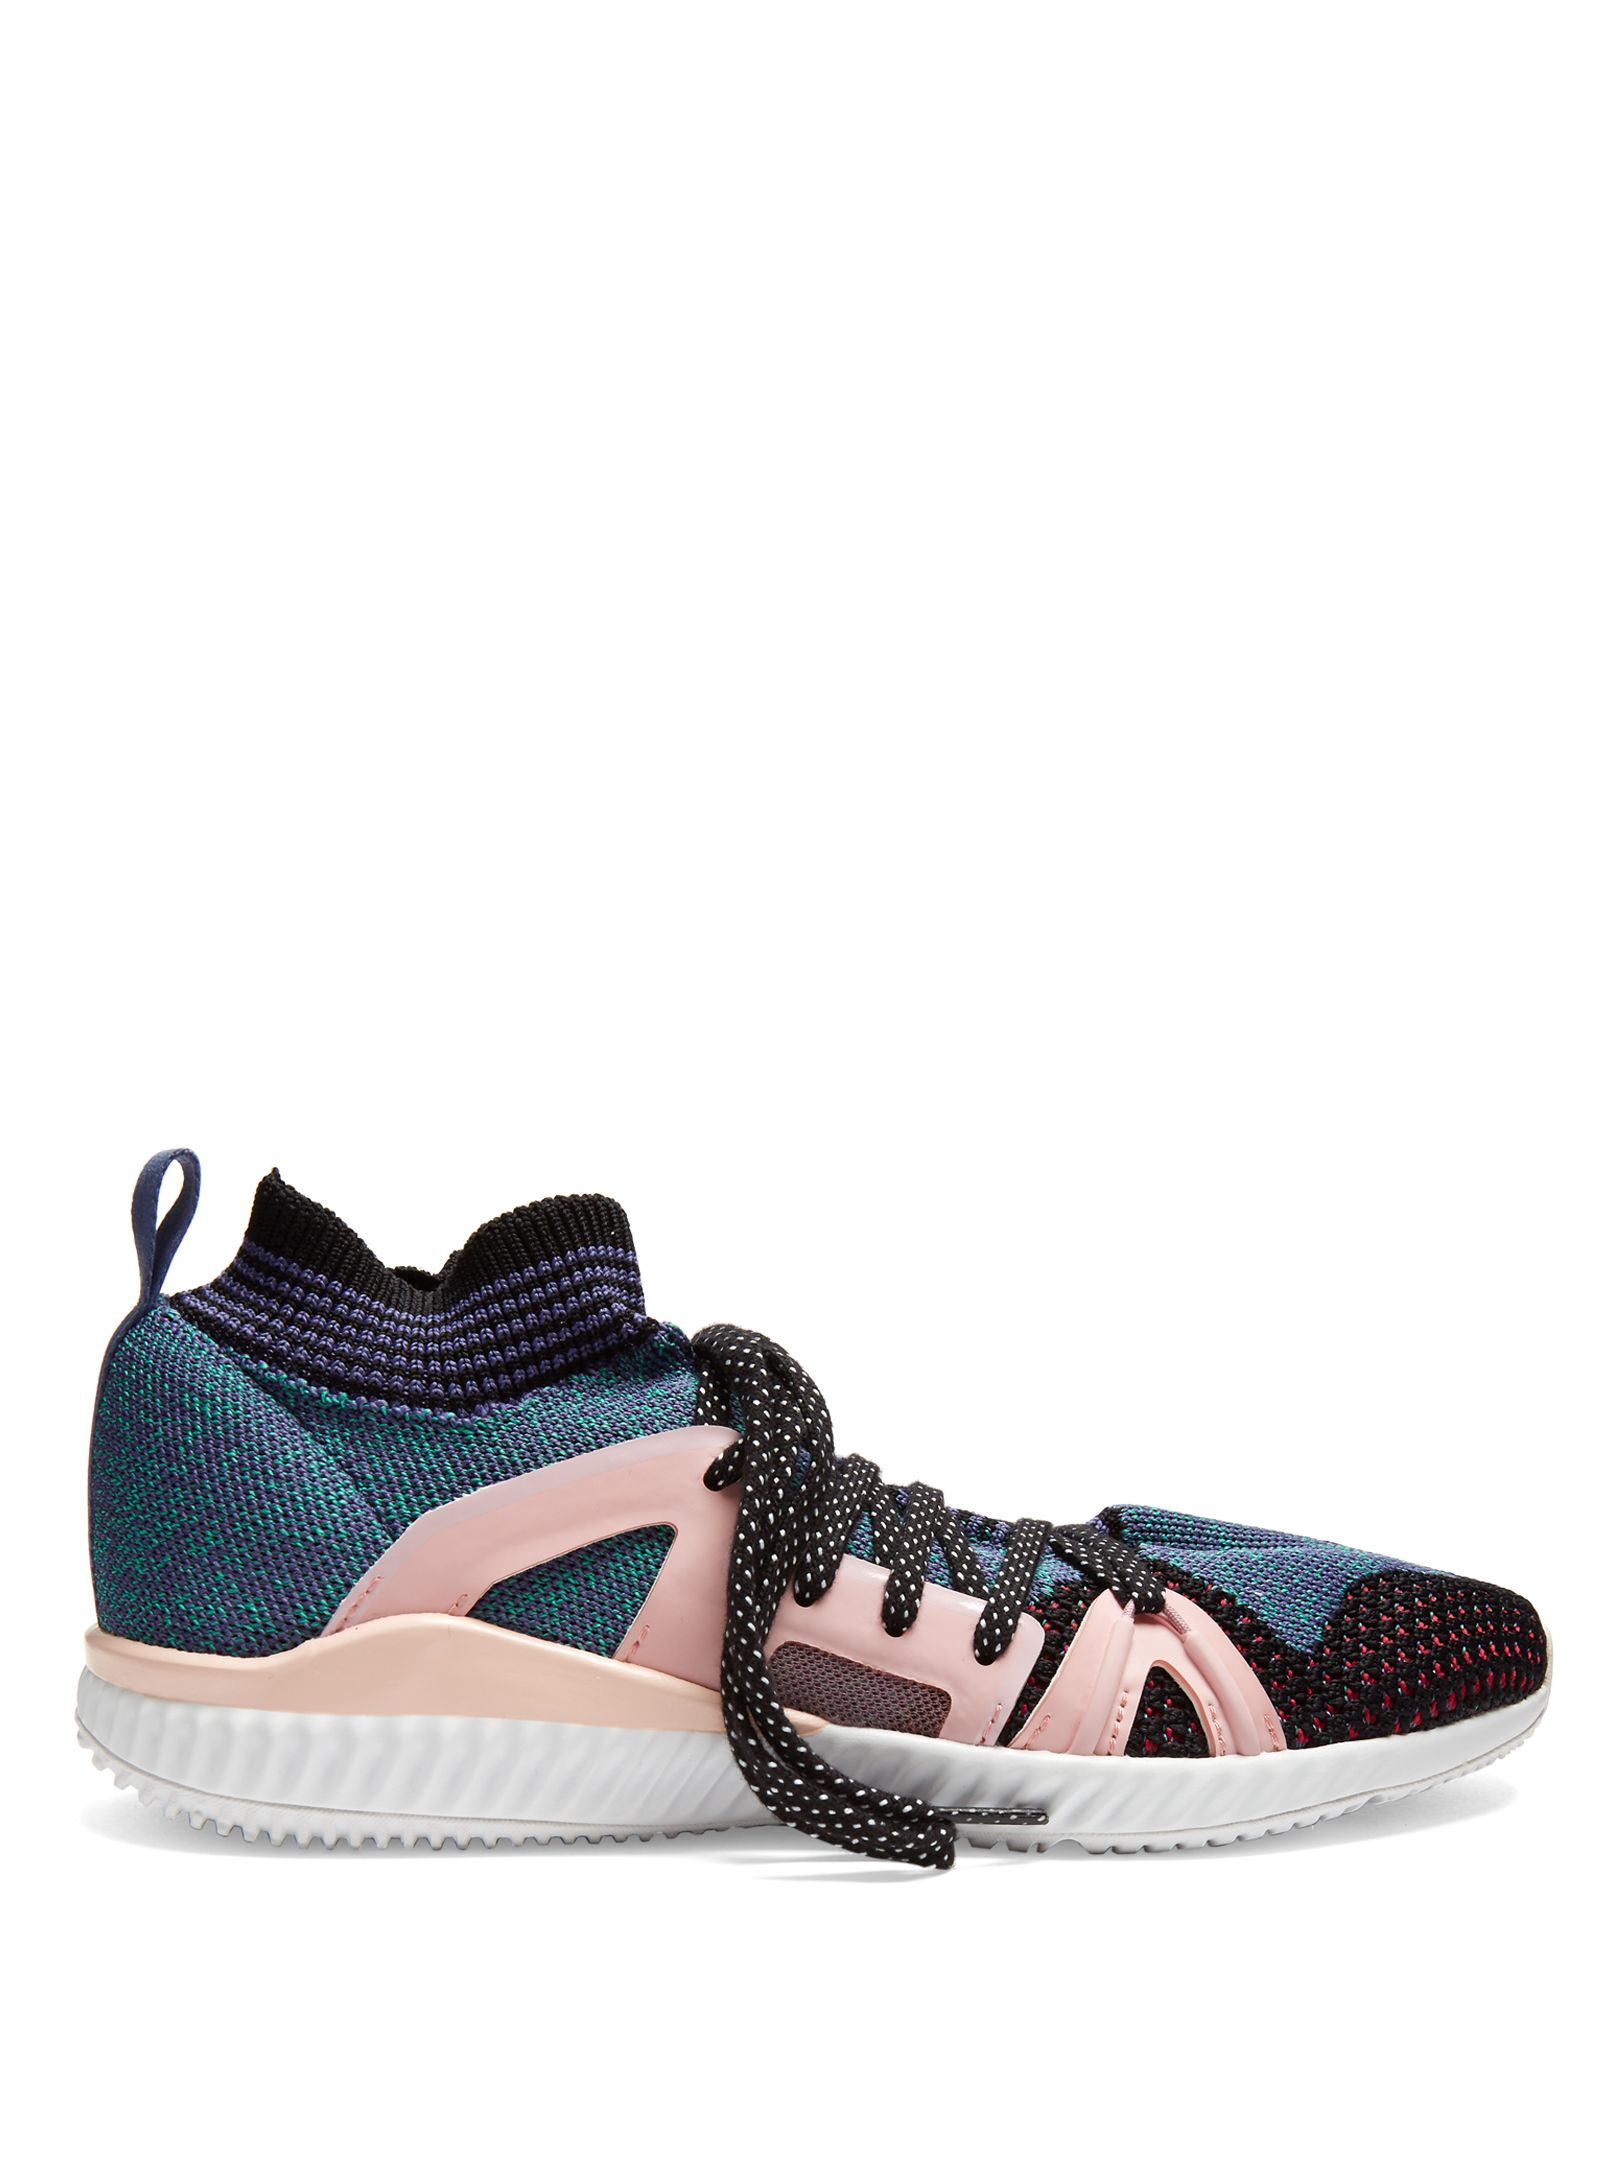 Click here to buy Adidas By Stella McCartney Crazymove Bounce low-top  trainers at MATCHESFASHION.COM c534f1c8c